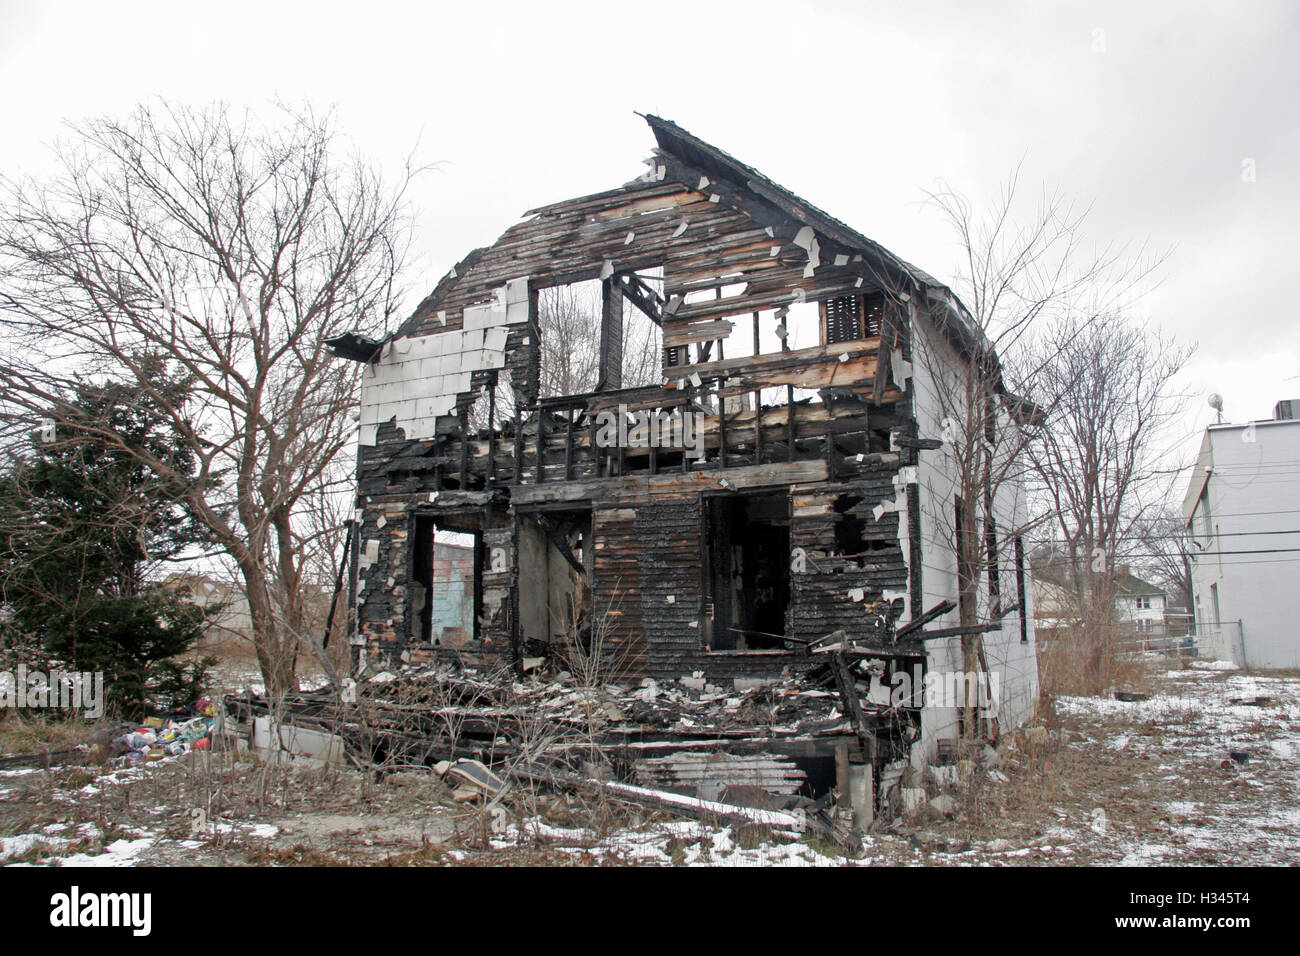 Fabulous C8 Alamy Com Comp H345T4 Burnt Out Ruined House In Download Free Architecture Designs Licukmadebymaigaardcom